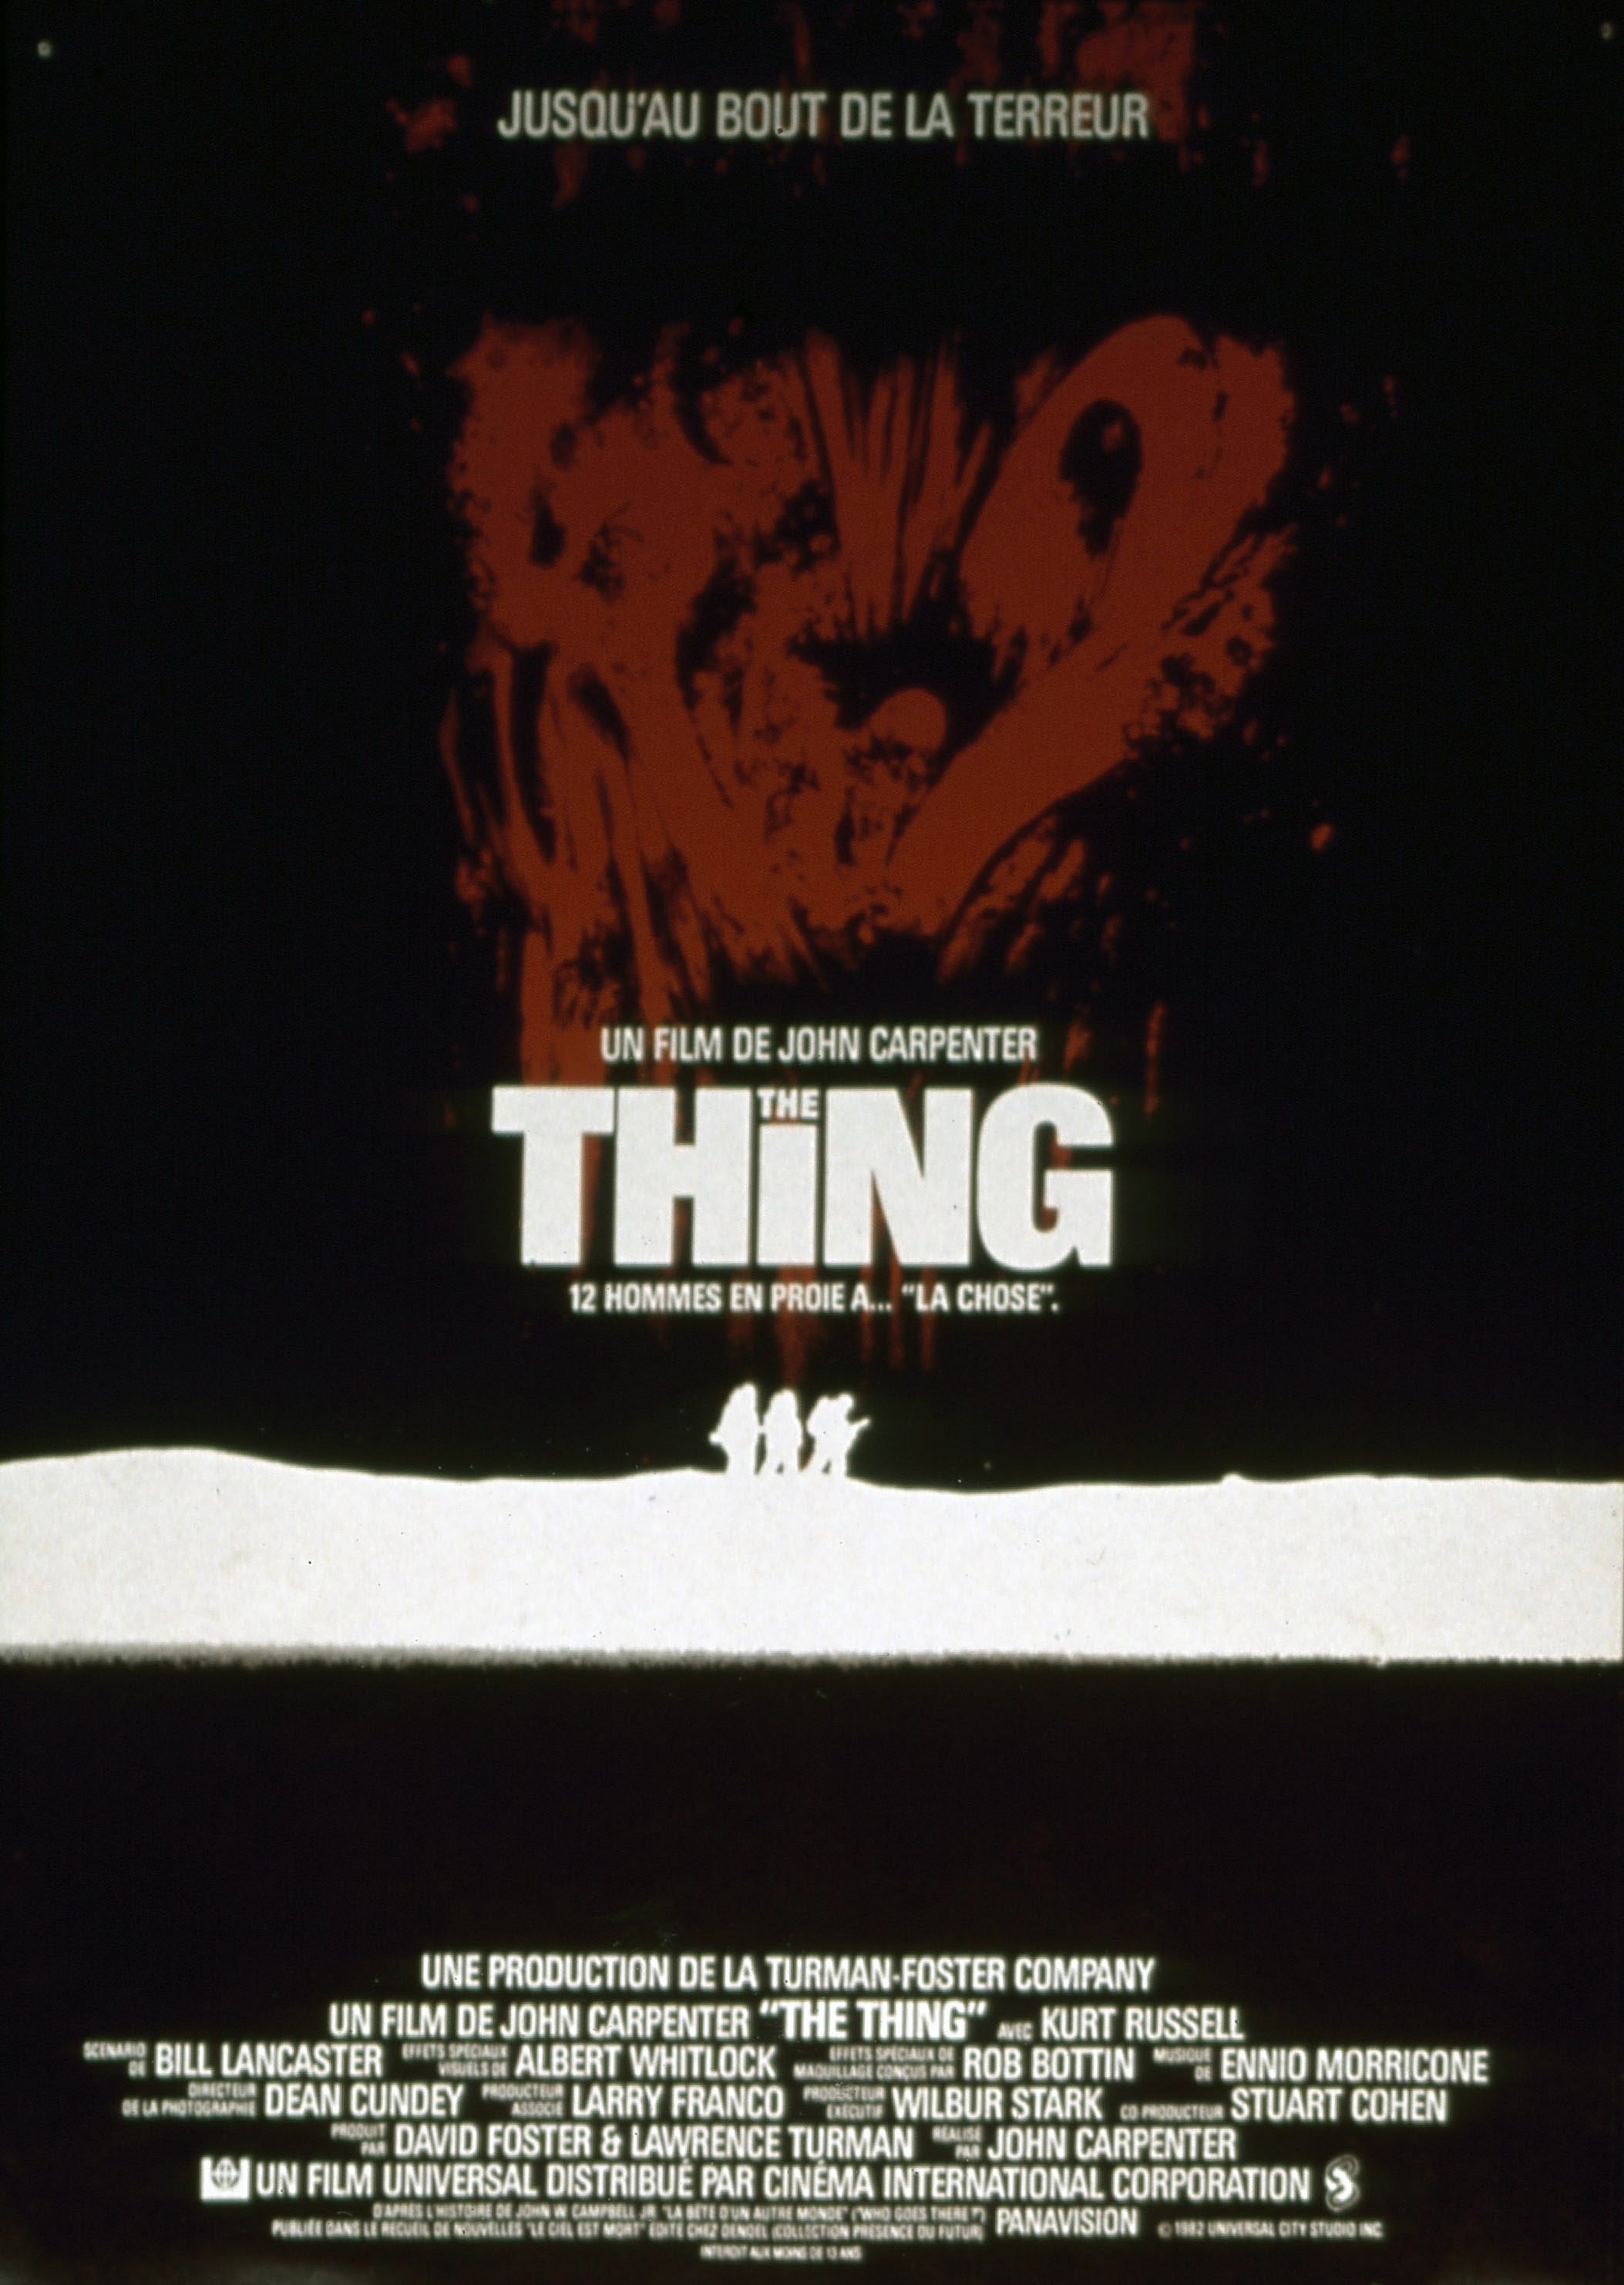 [CRITIQUE] THE THING (1982)